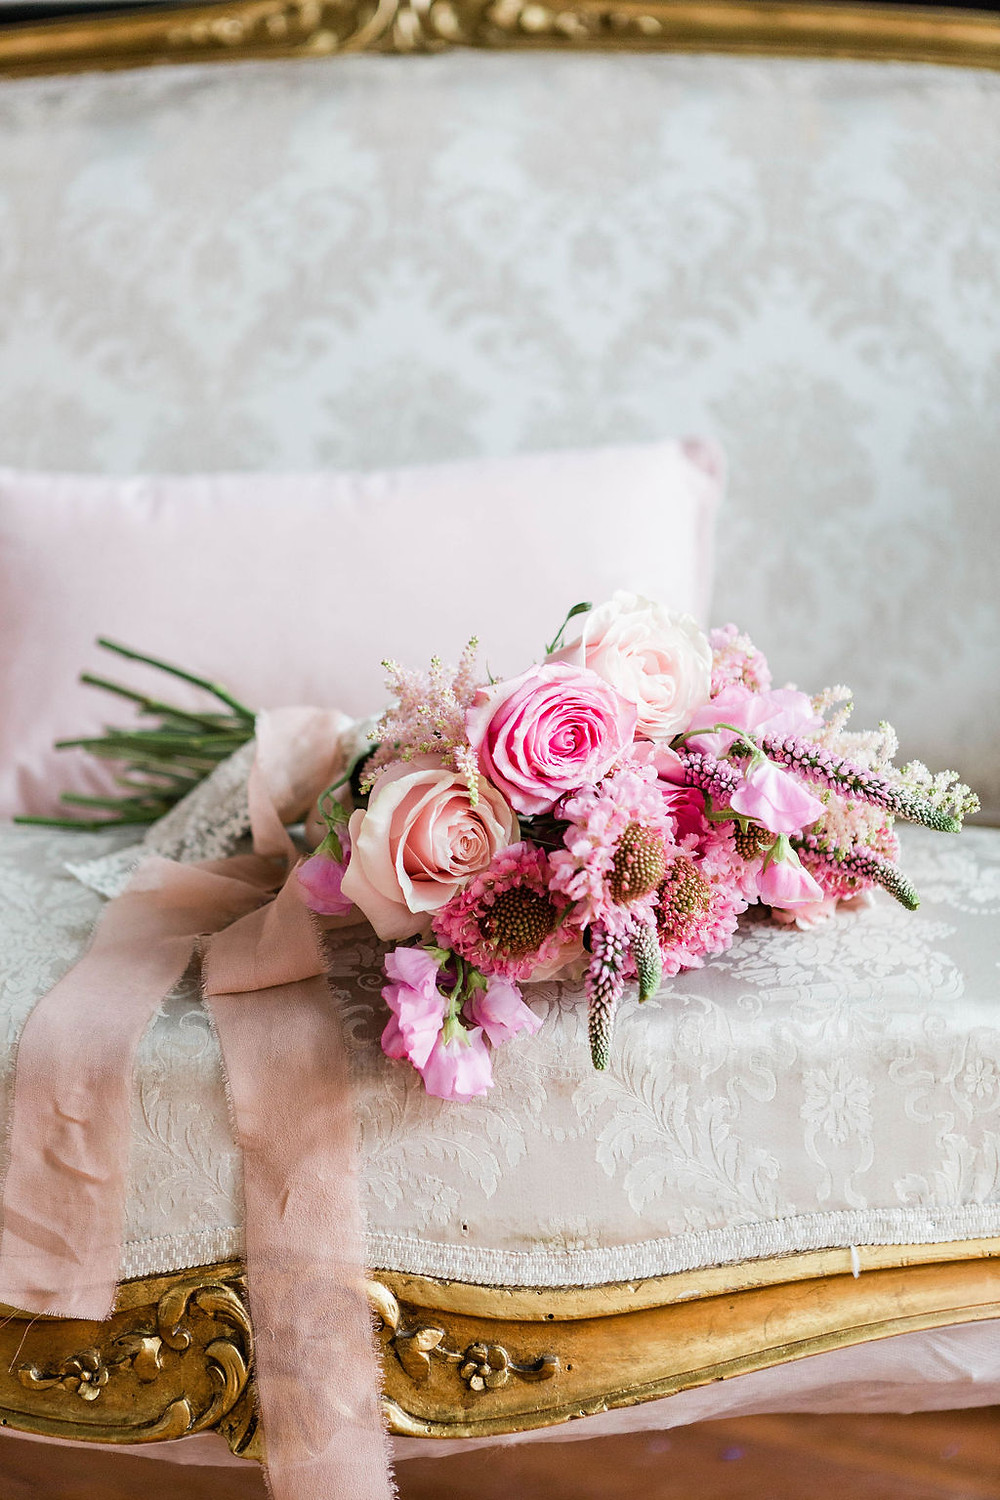 simple rose bouquet of pink tones, tied with a torn ribbon